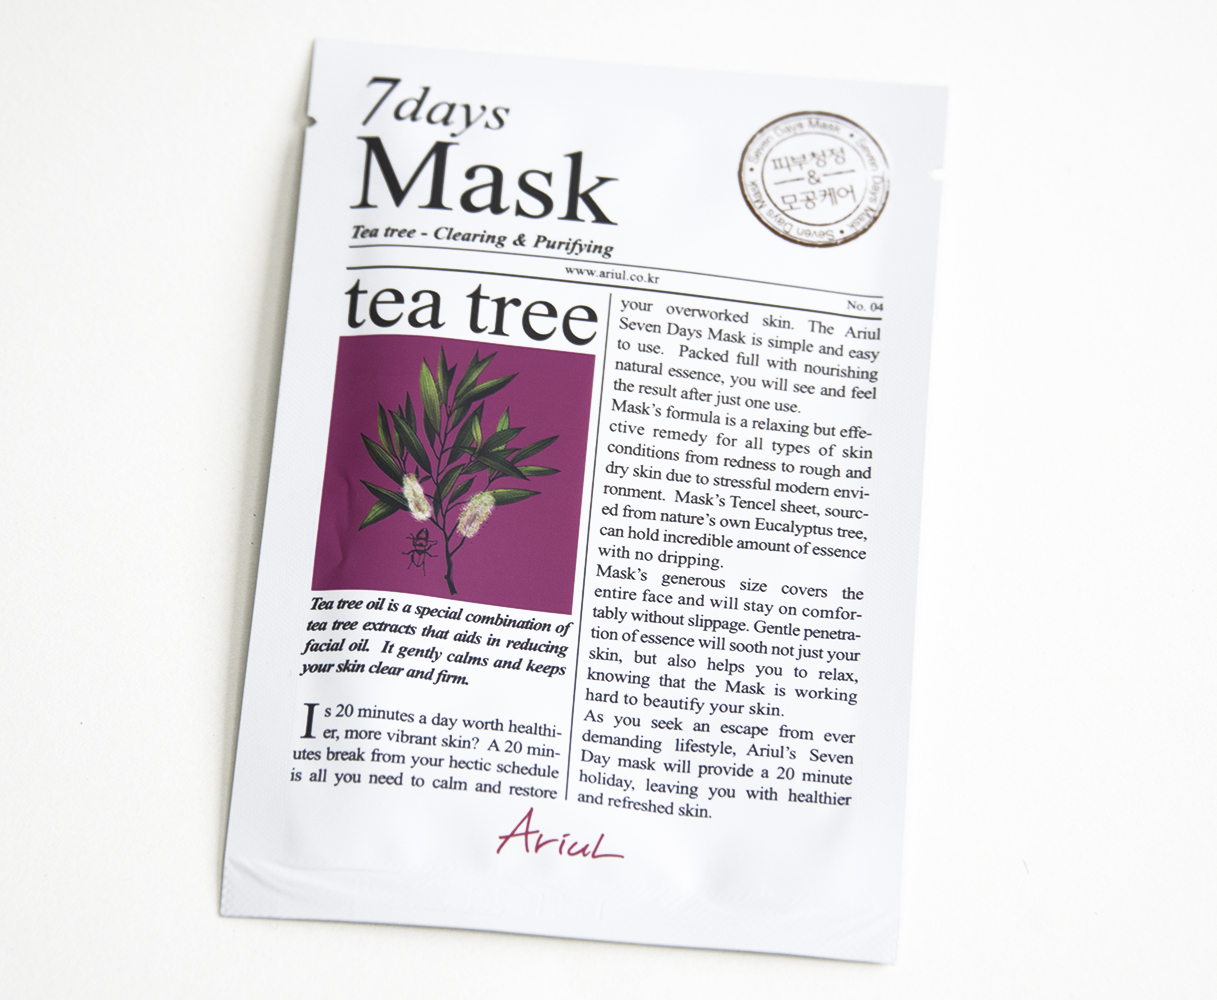 7 Days Mask Tea Tree